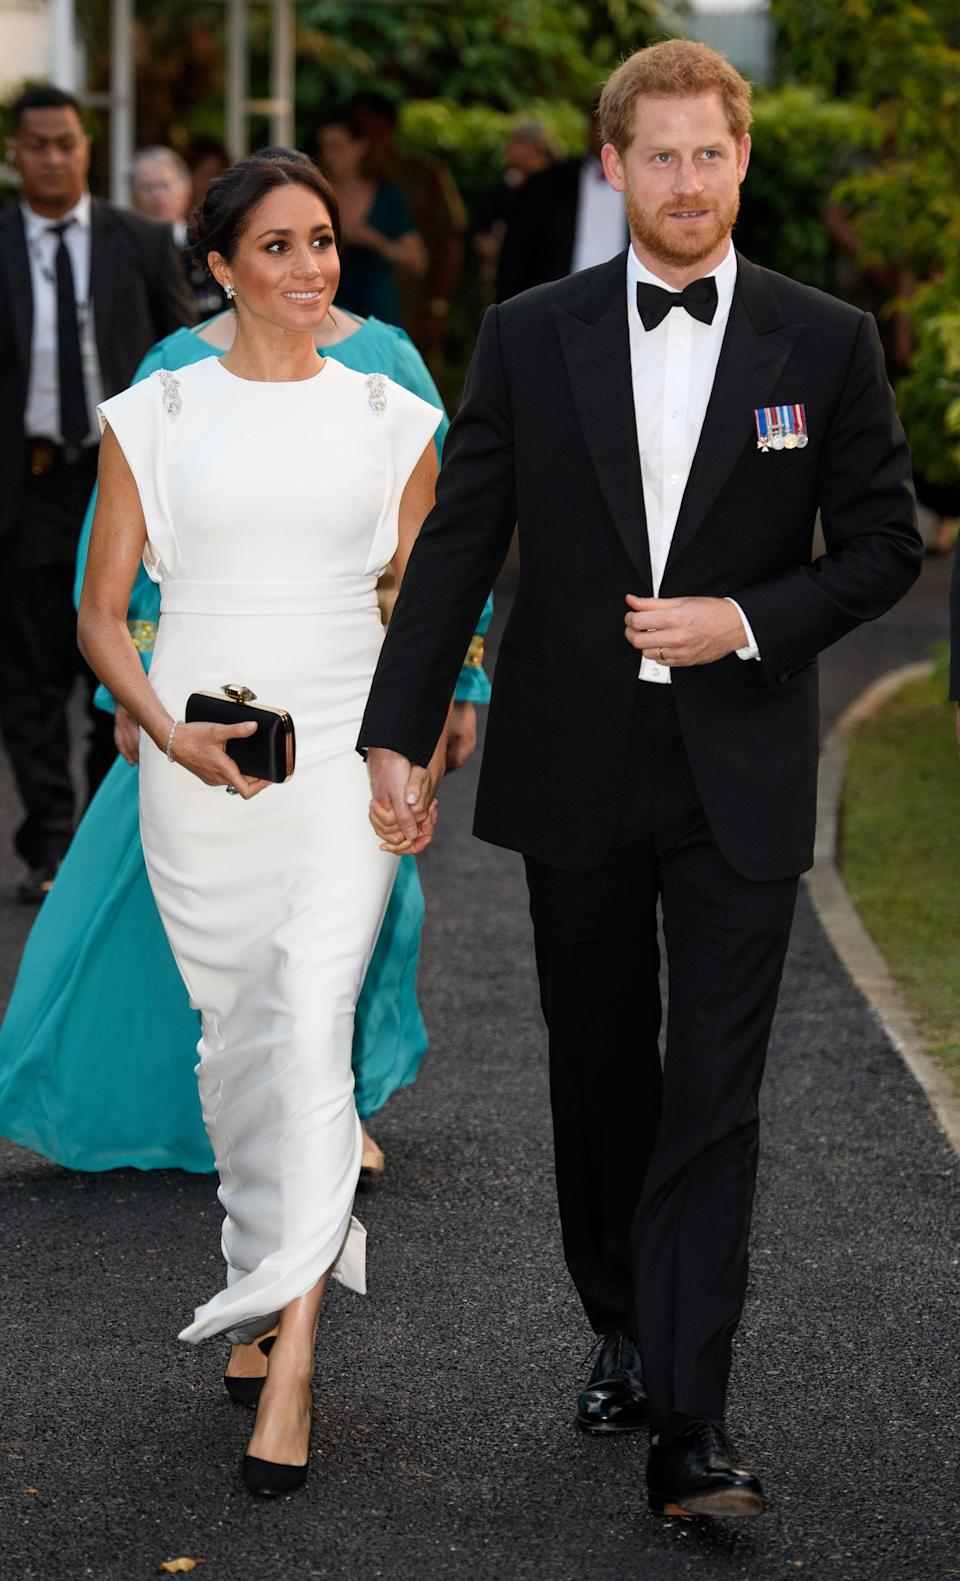 <p>For an evening reception and dinner in Tonga, the Duchess wore a white gown by Theia Couture with Aquazzura shoes, Birks earrings and her go-to Givenchy clutch. In a touching nod to Princess Diana, the Duchess finished the look with the late royal's aquamarine ring. <em>[Photo: Getty]</em> </p>